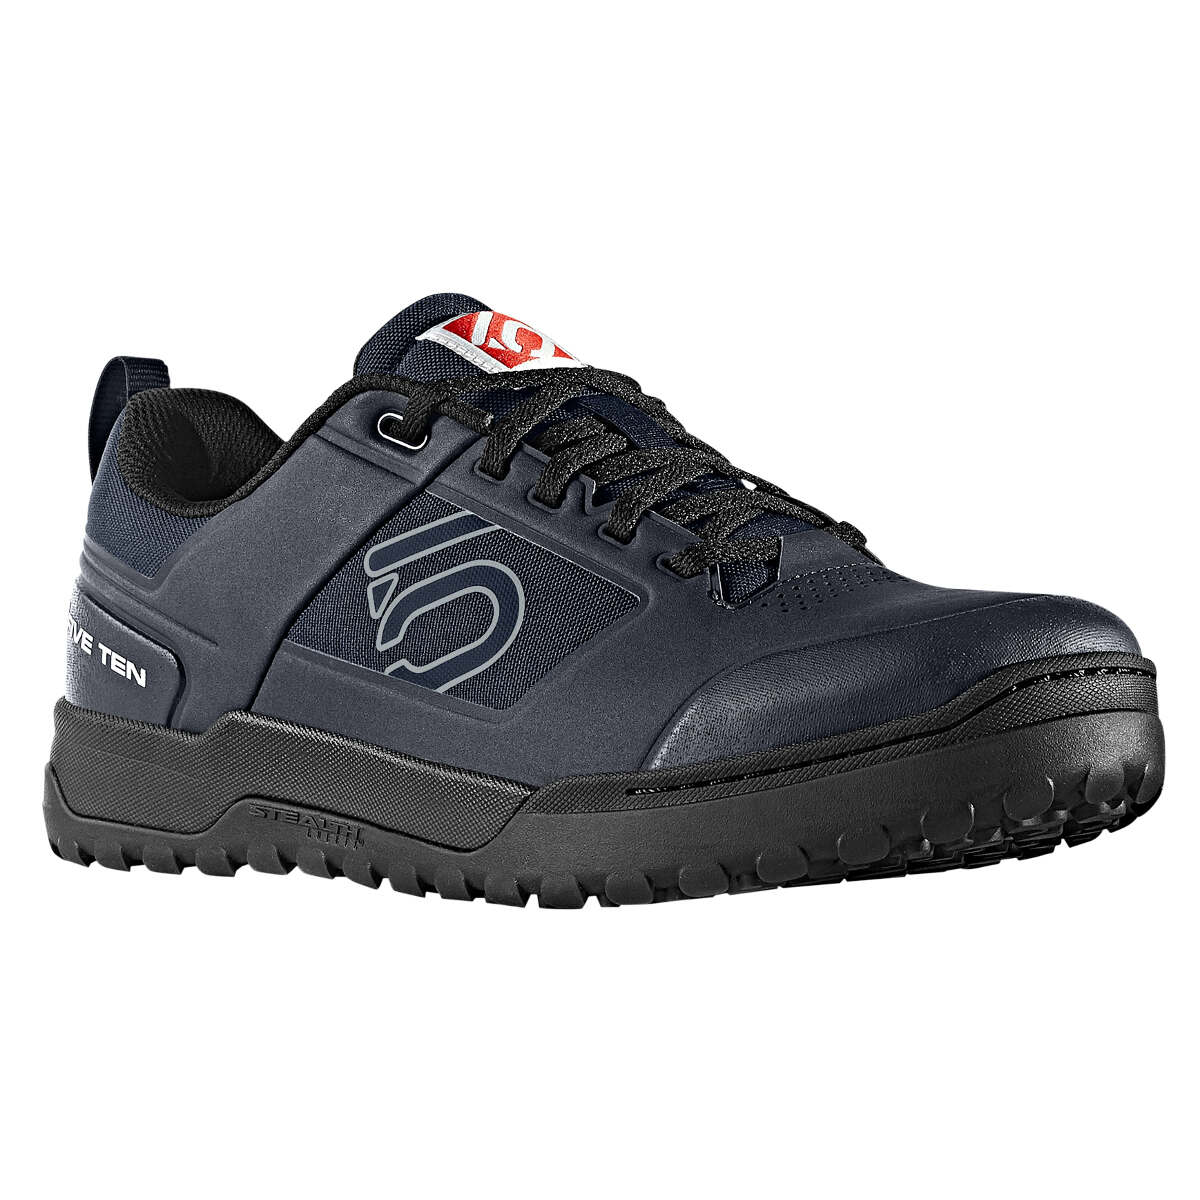 Five Ten MTB-Schuhe Impact Impact Impact Pro Night Navy bb0561